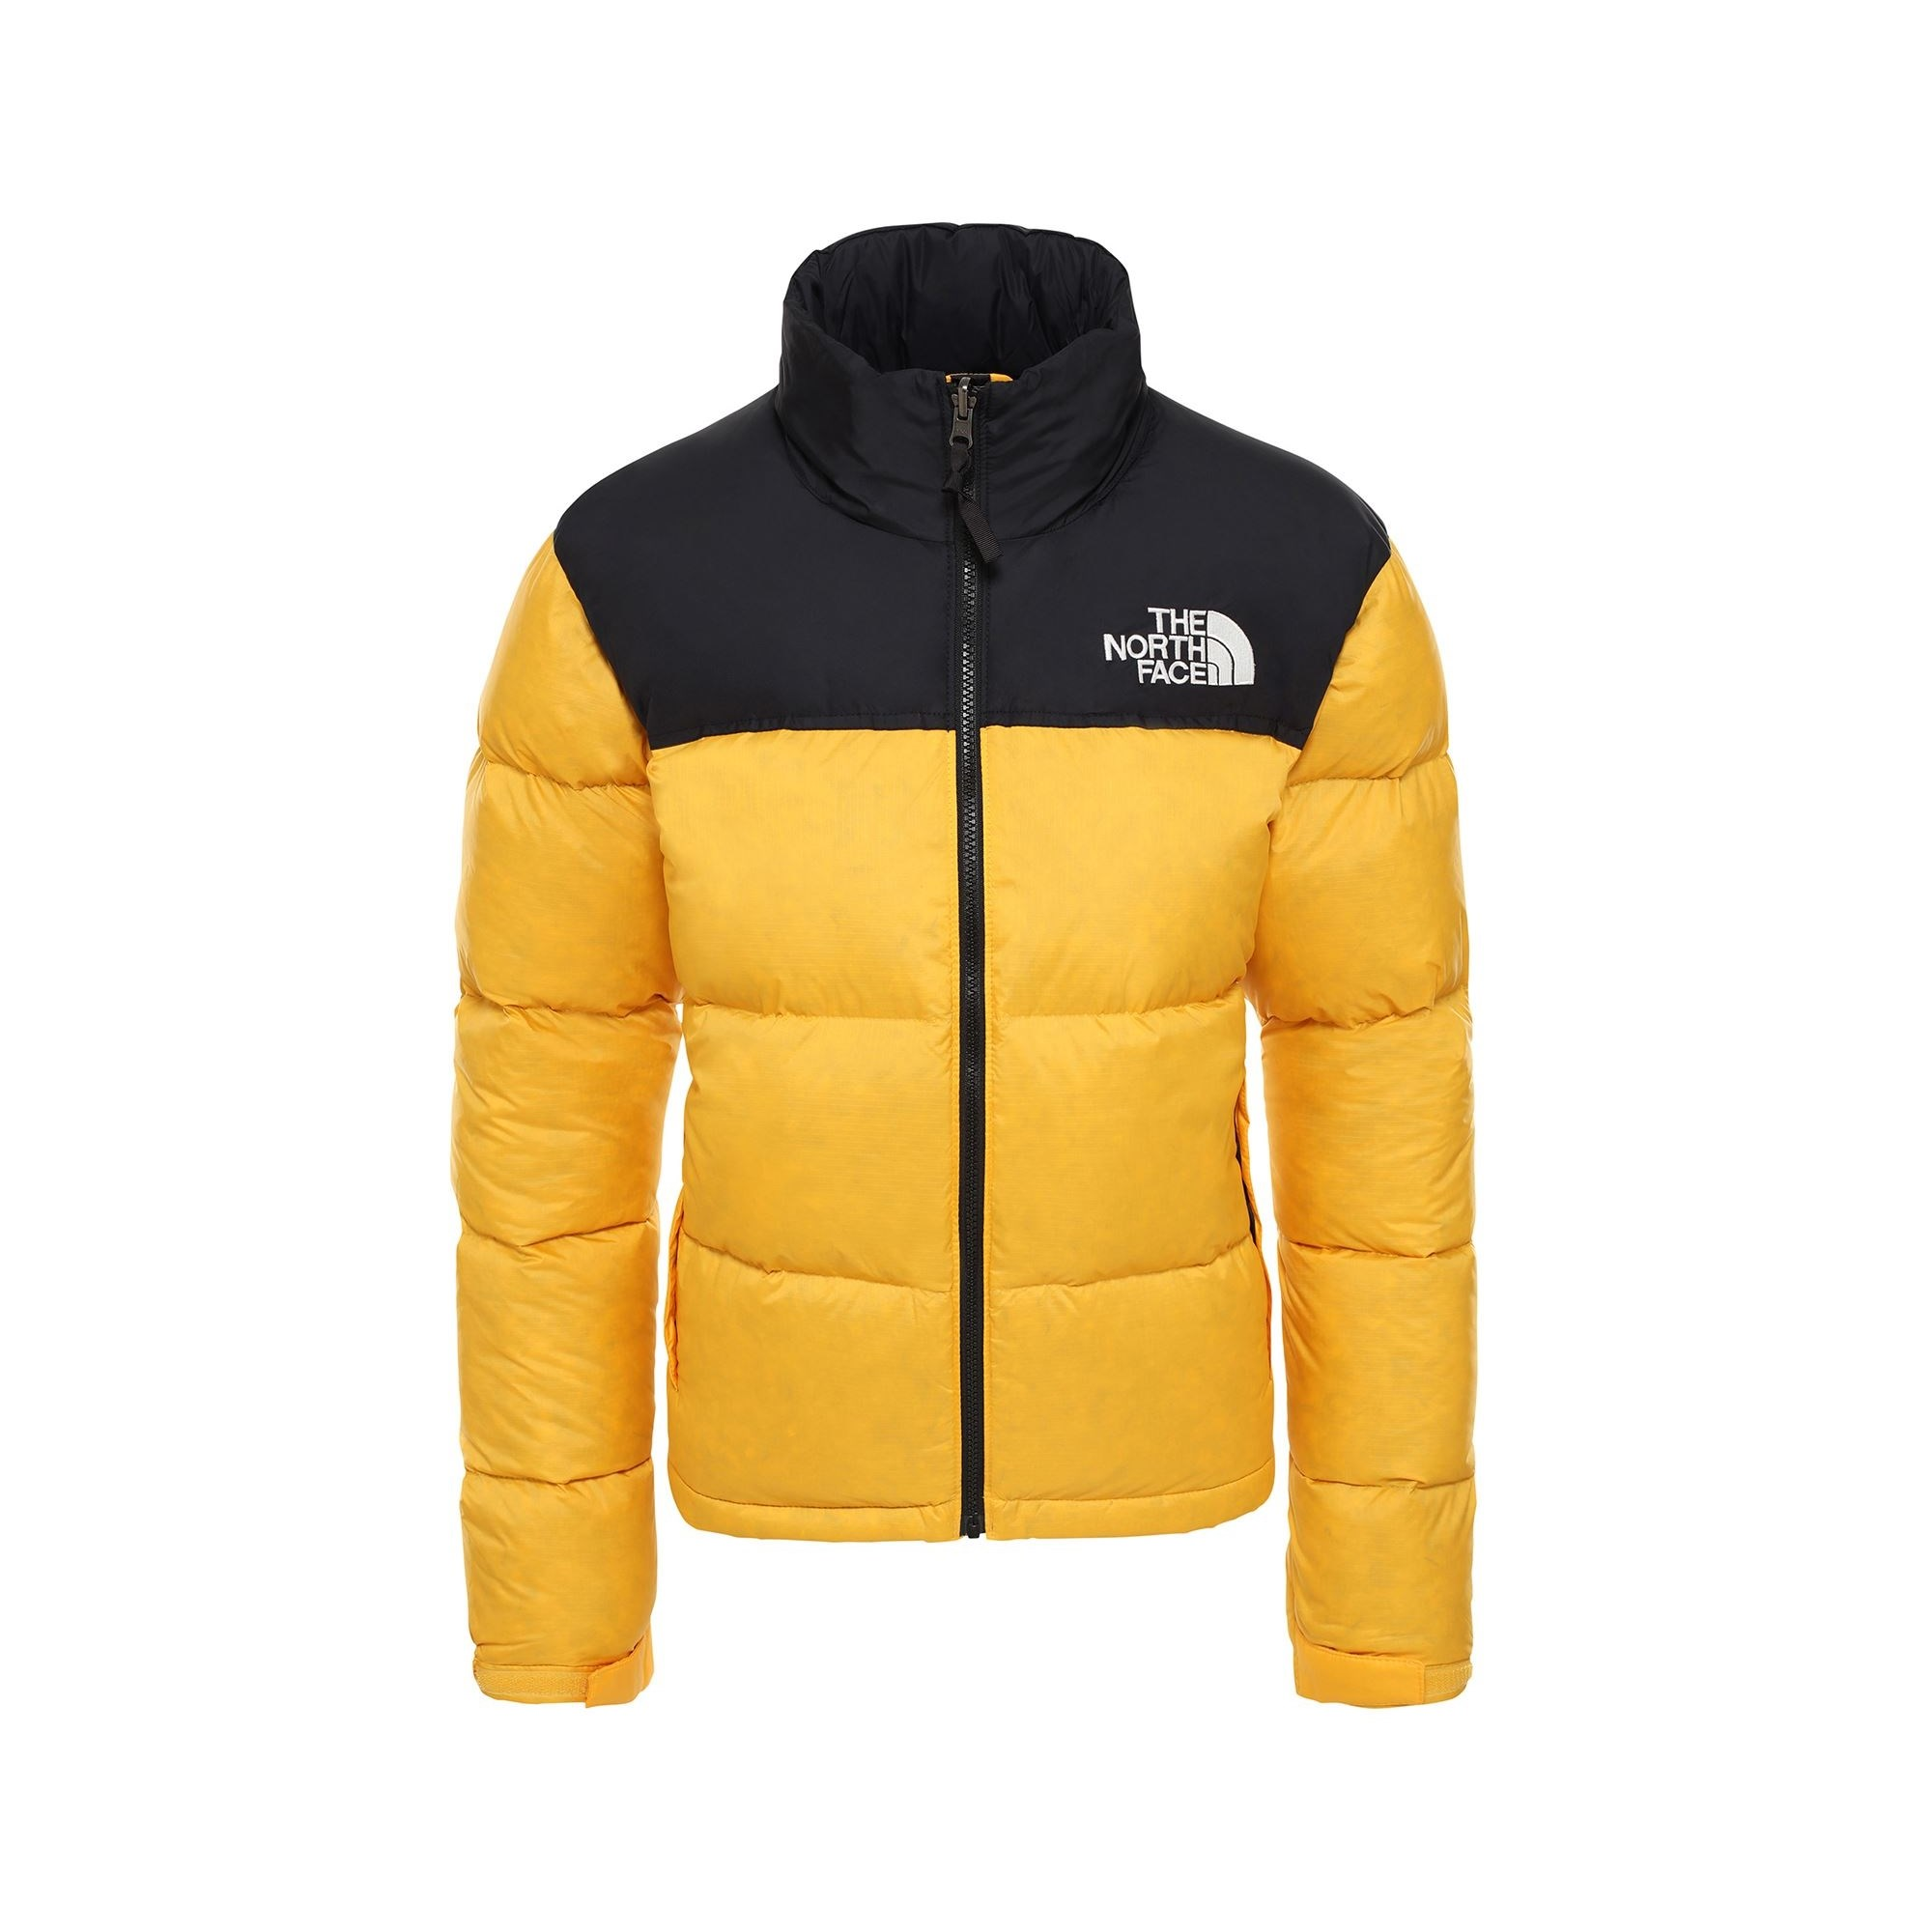 The North Face Kadin Mont 1996 Retro Nuptse Nf0a3xeo70m1 Sporthink Com Tr